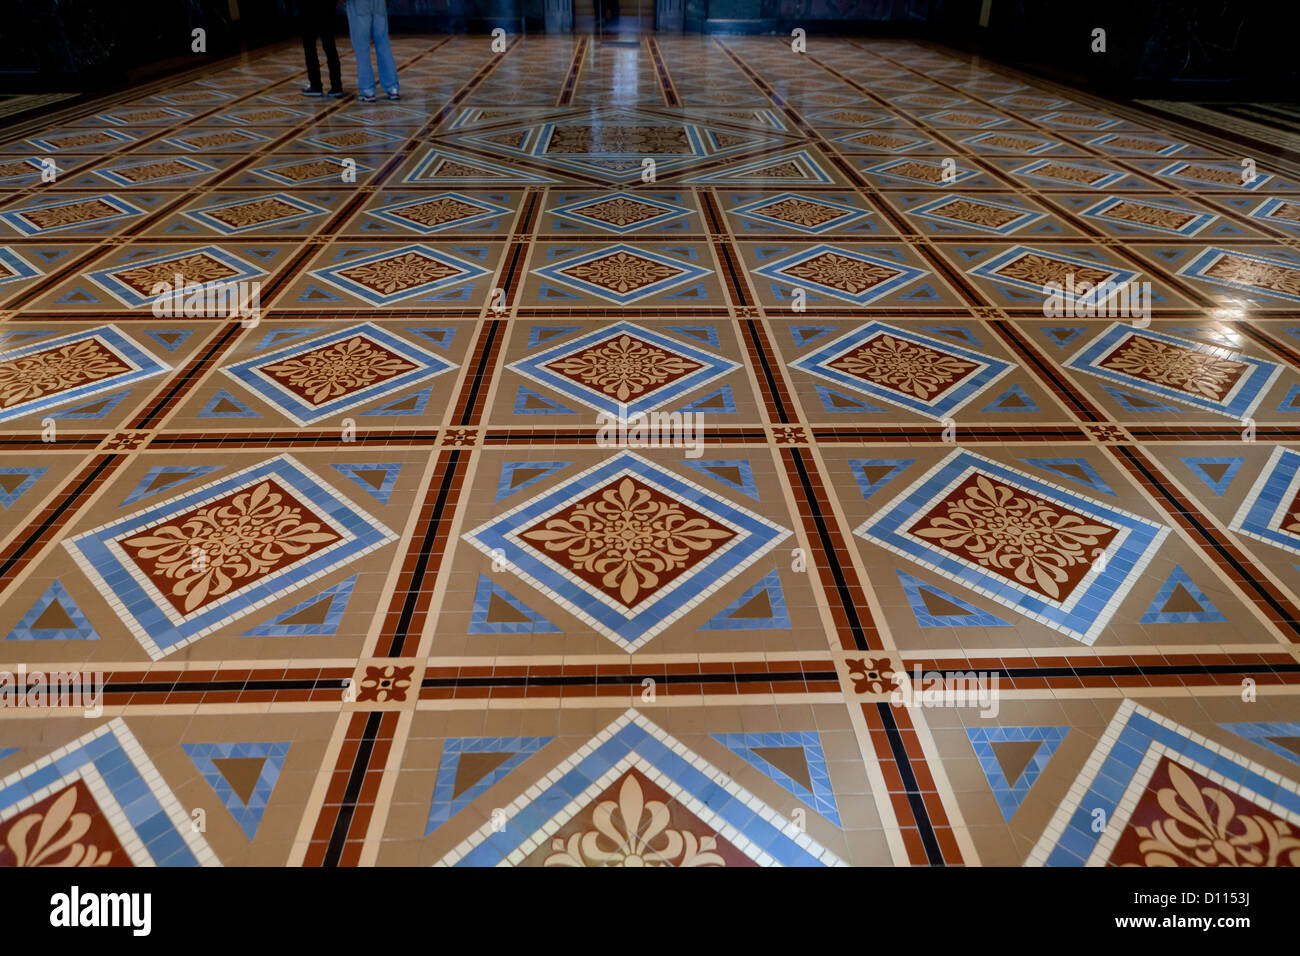 Ornate tile floor - Stock Image